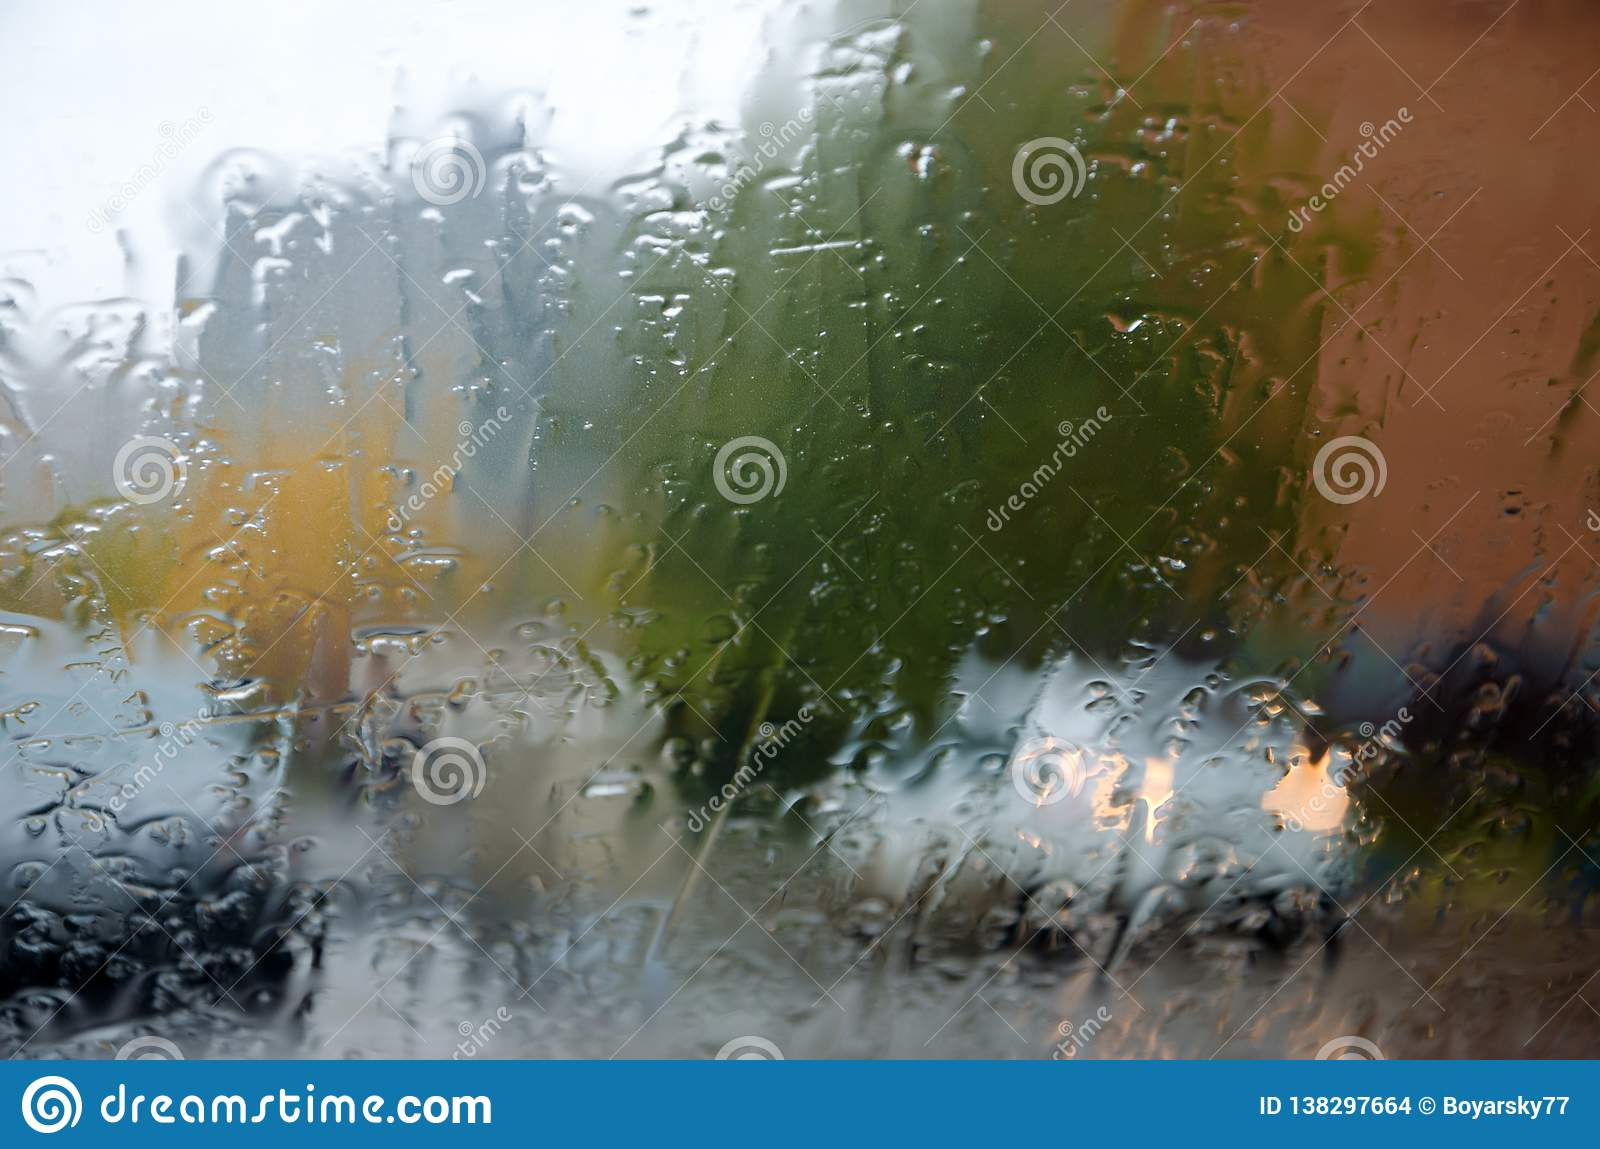 adverse driving conditions stock photo image of road drive 138297664 dreamstime com